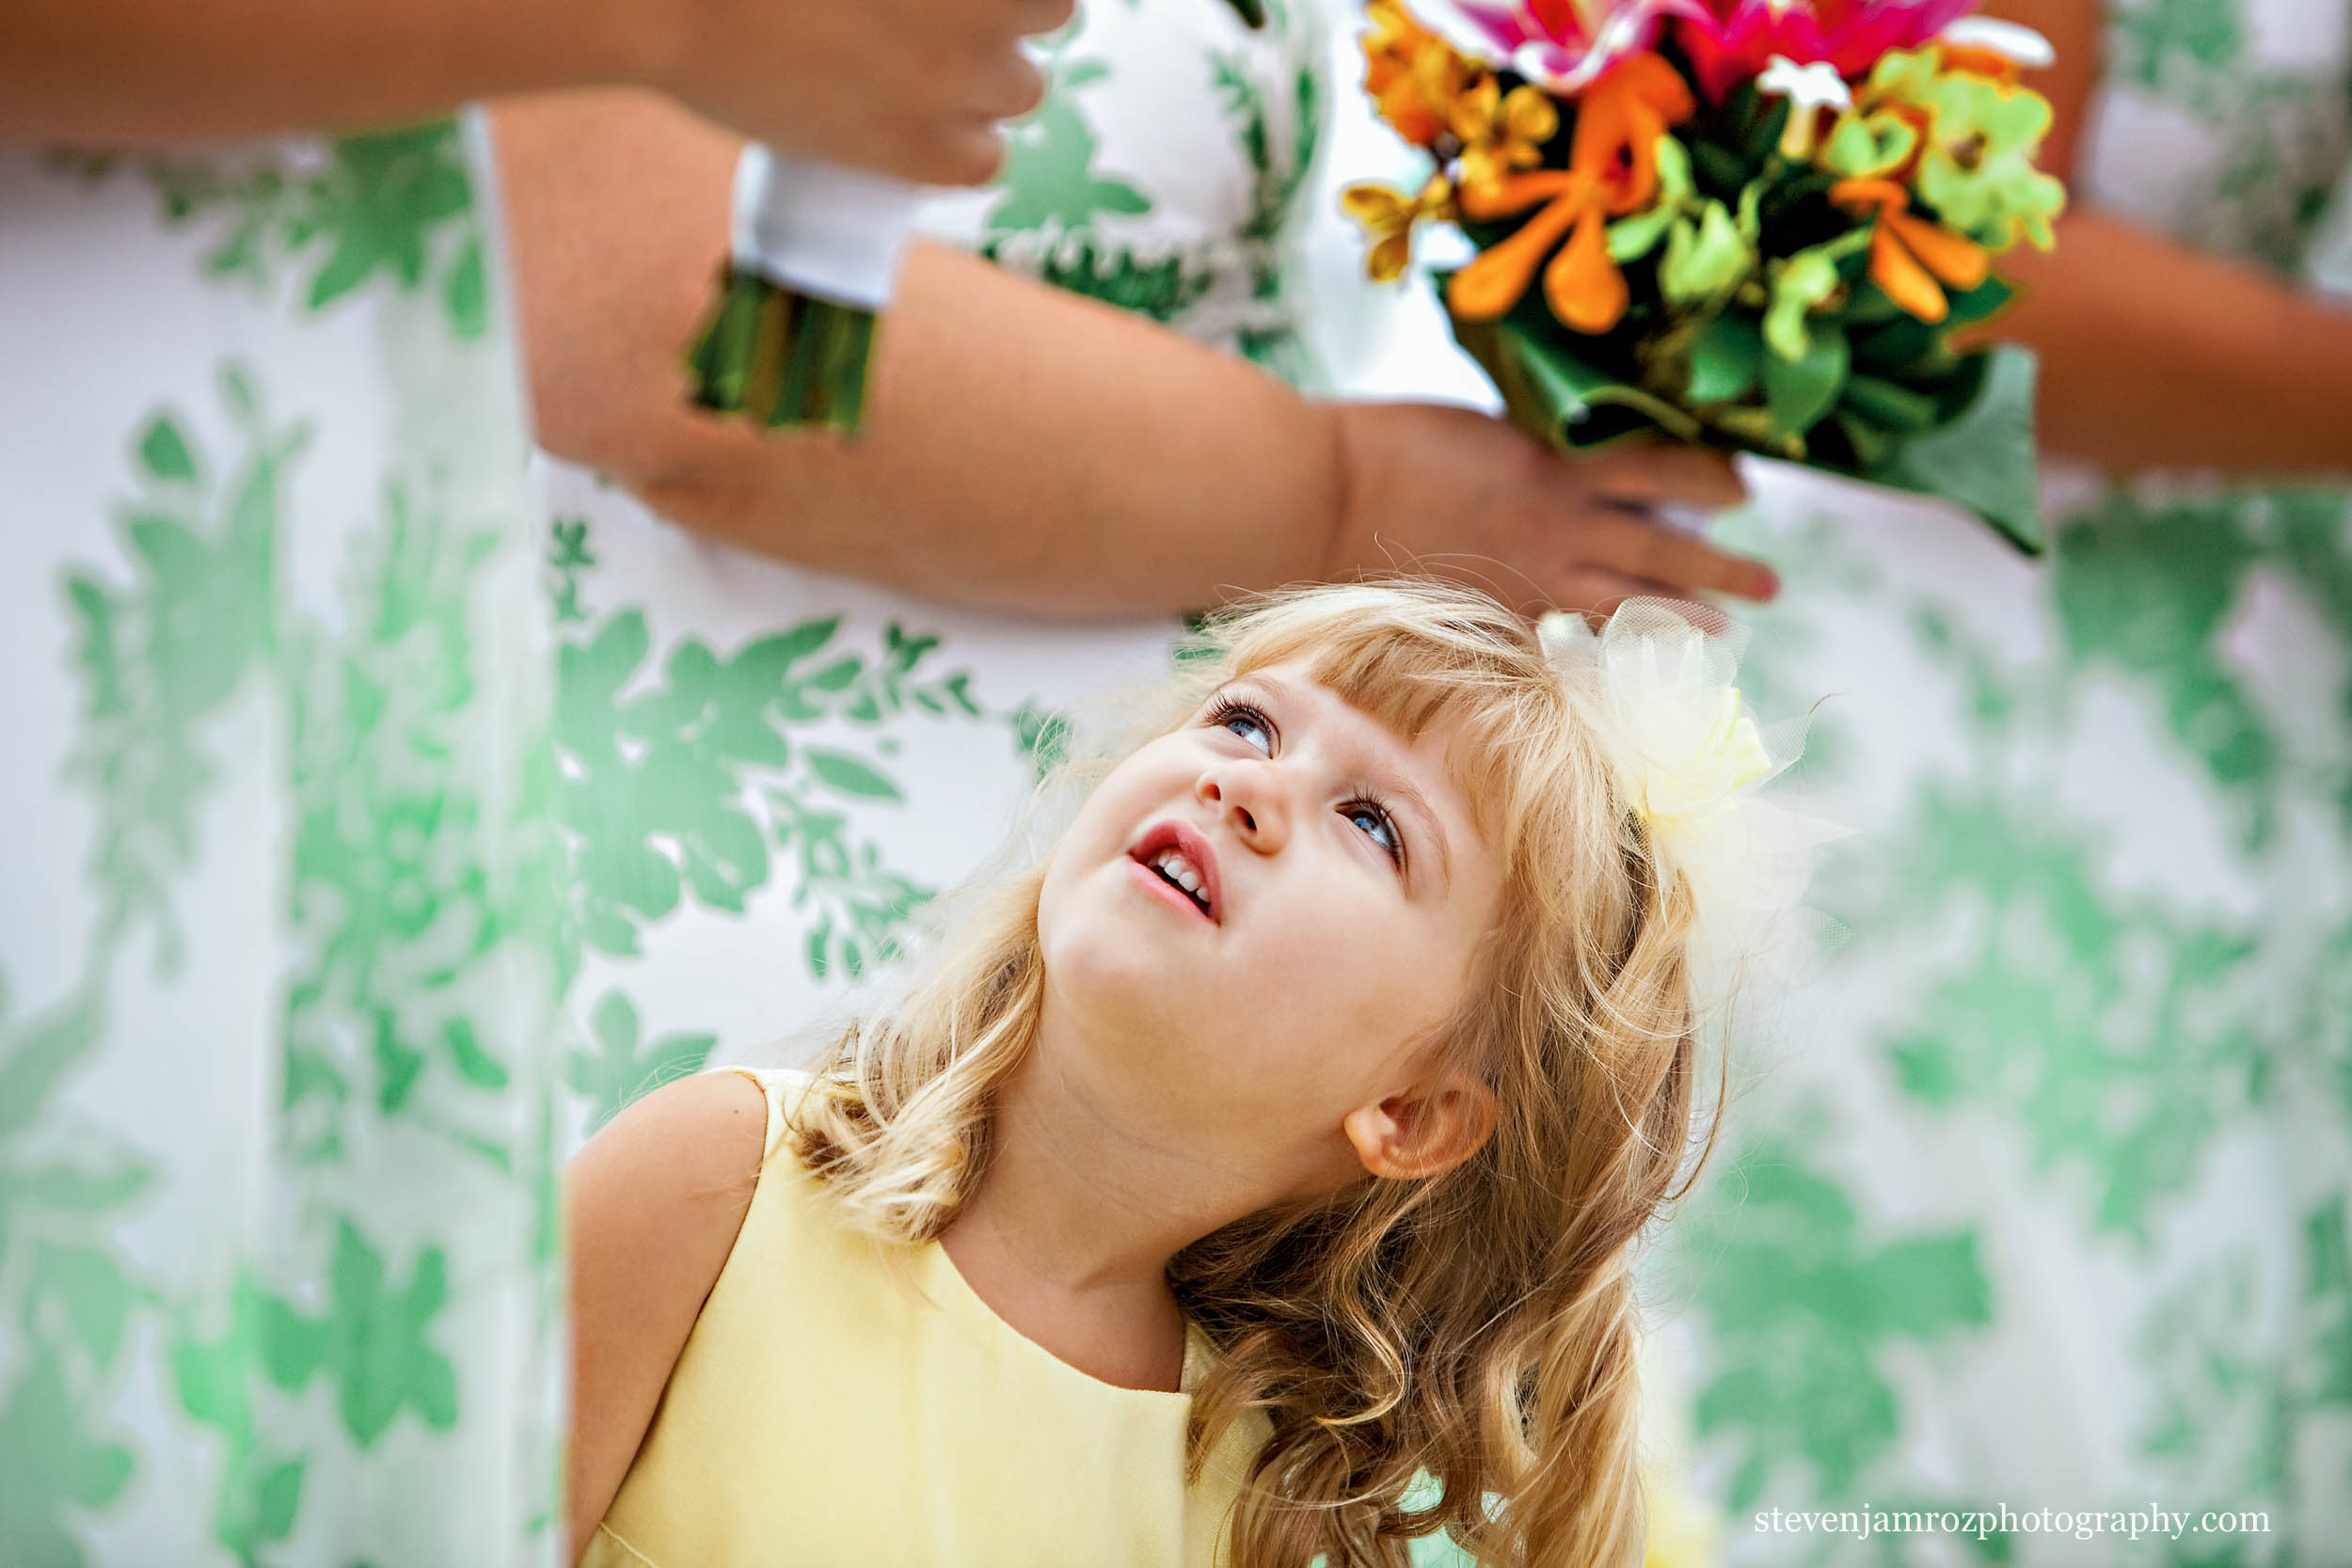 flower-dresses-cute-girl-wedding-raleigh-steven-jamroz-photography-0276.jpg